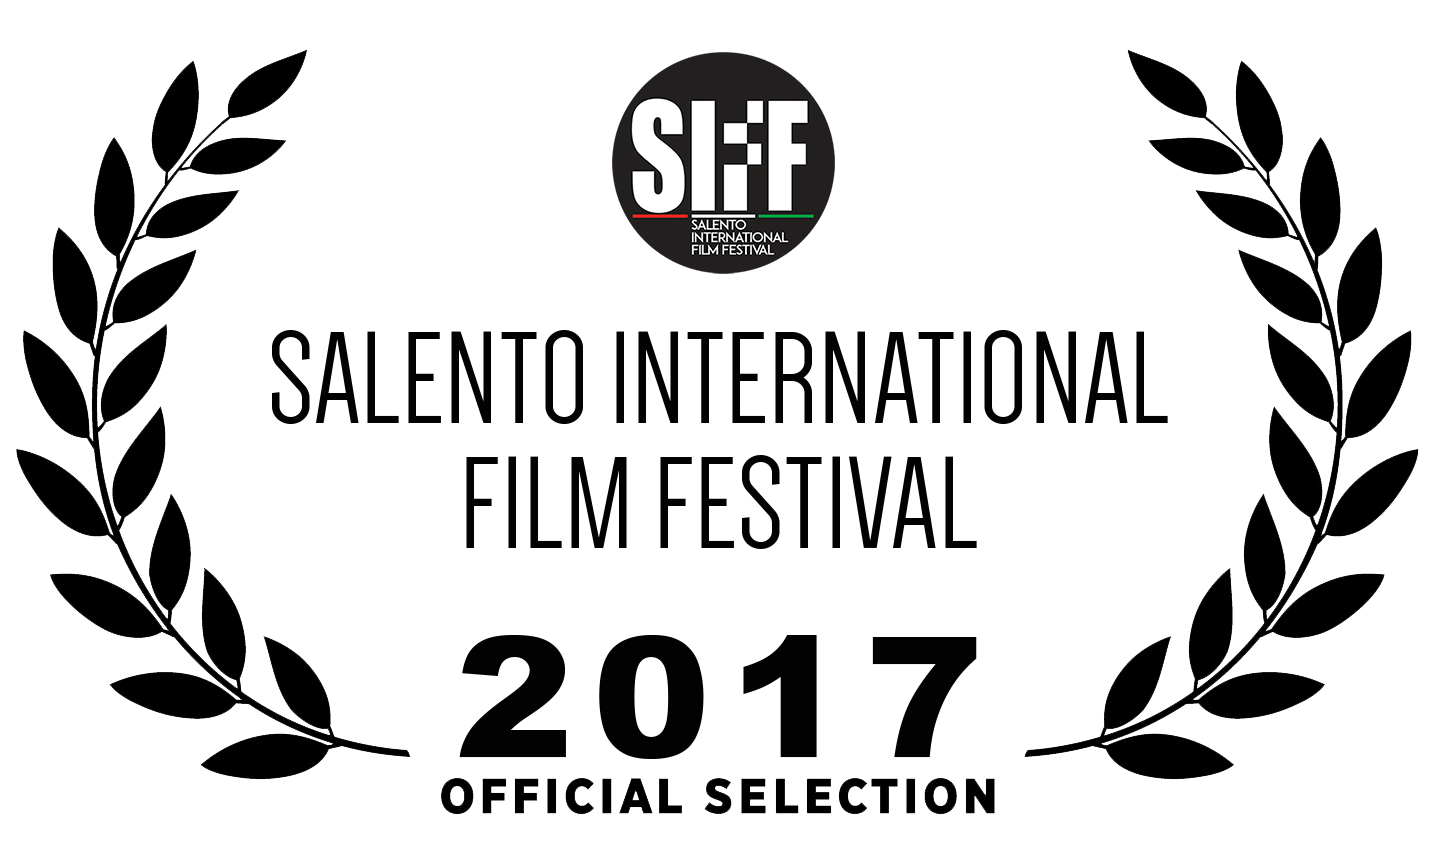 SIFF_Officila_Selection2017.png